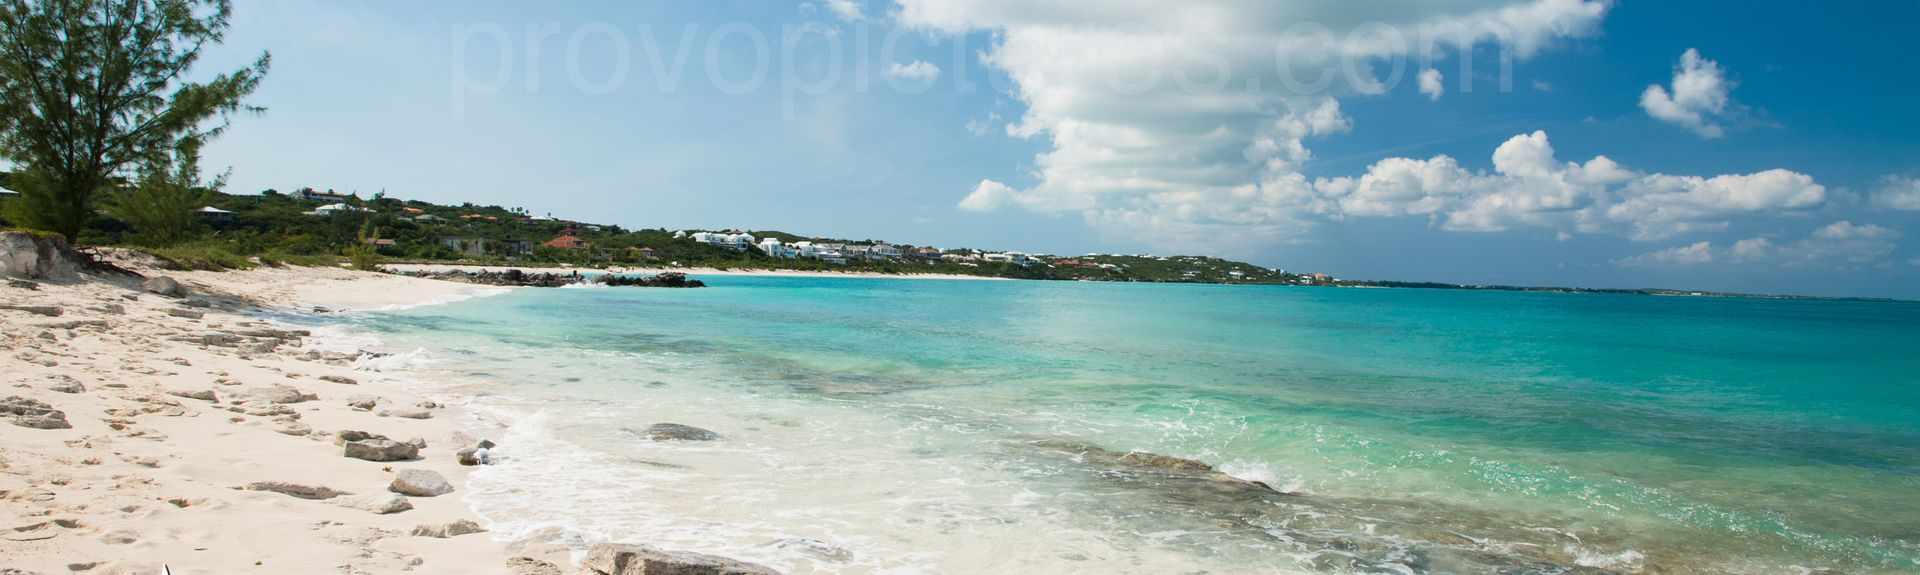 Silly Creek, Providenciales, Turks and Caicos Islands